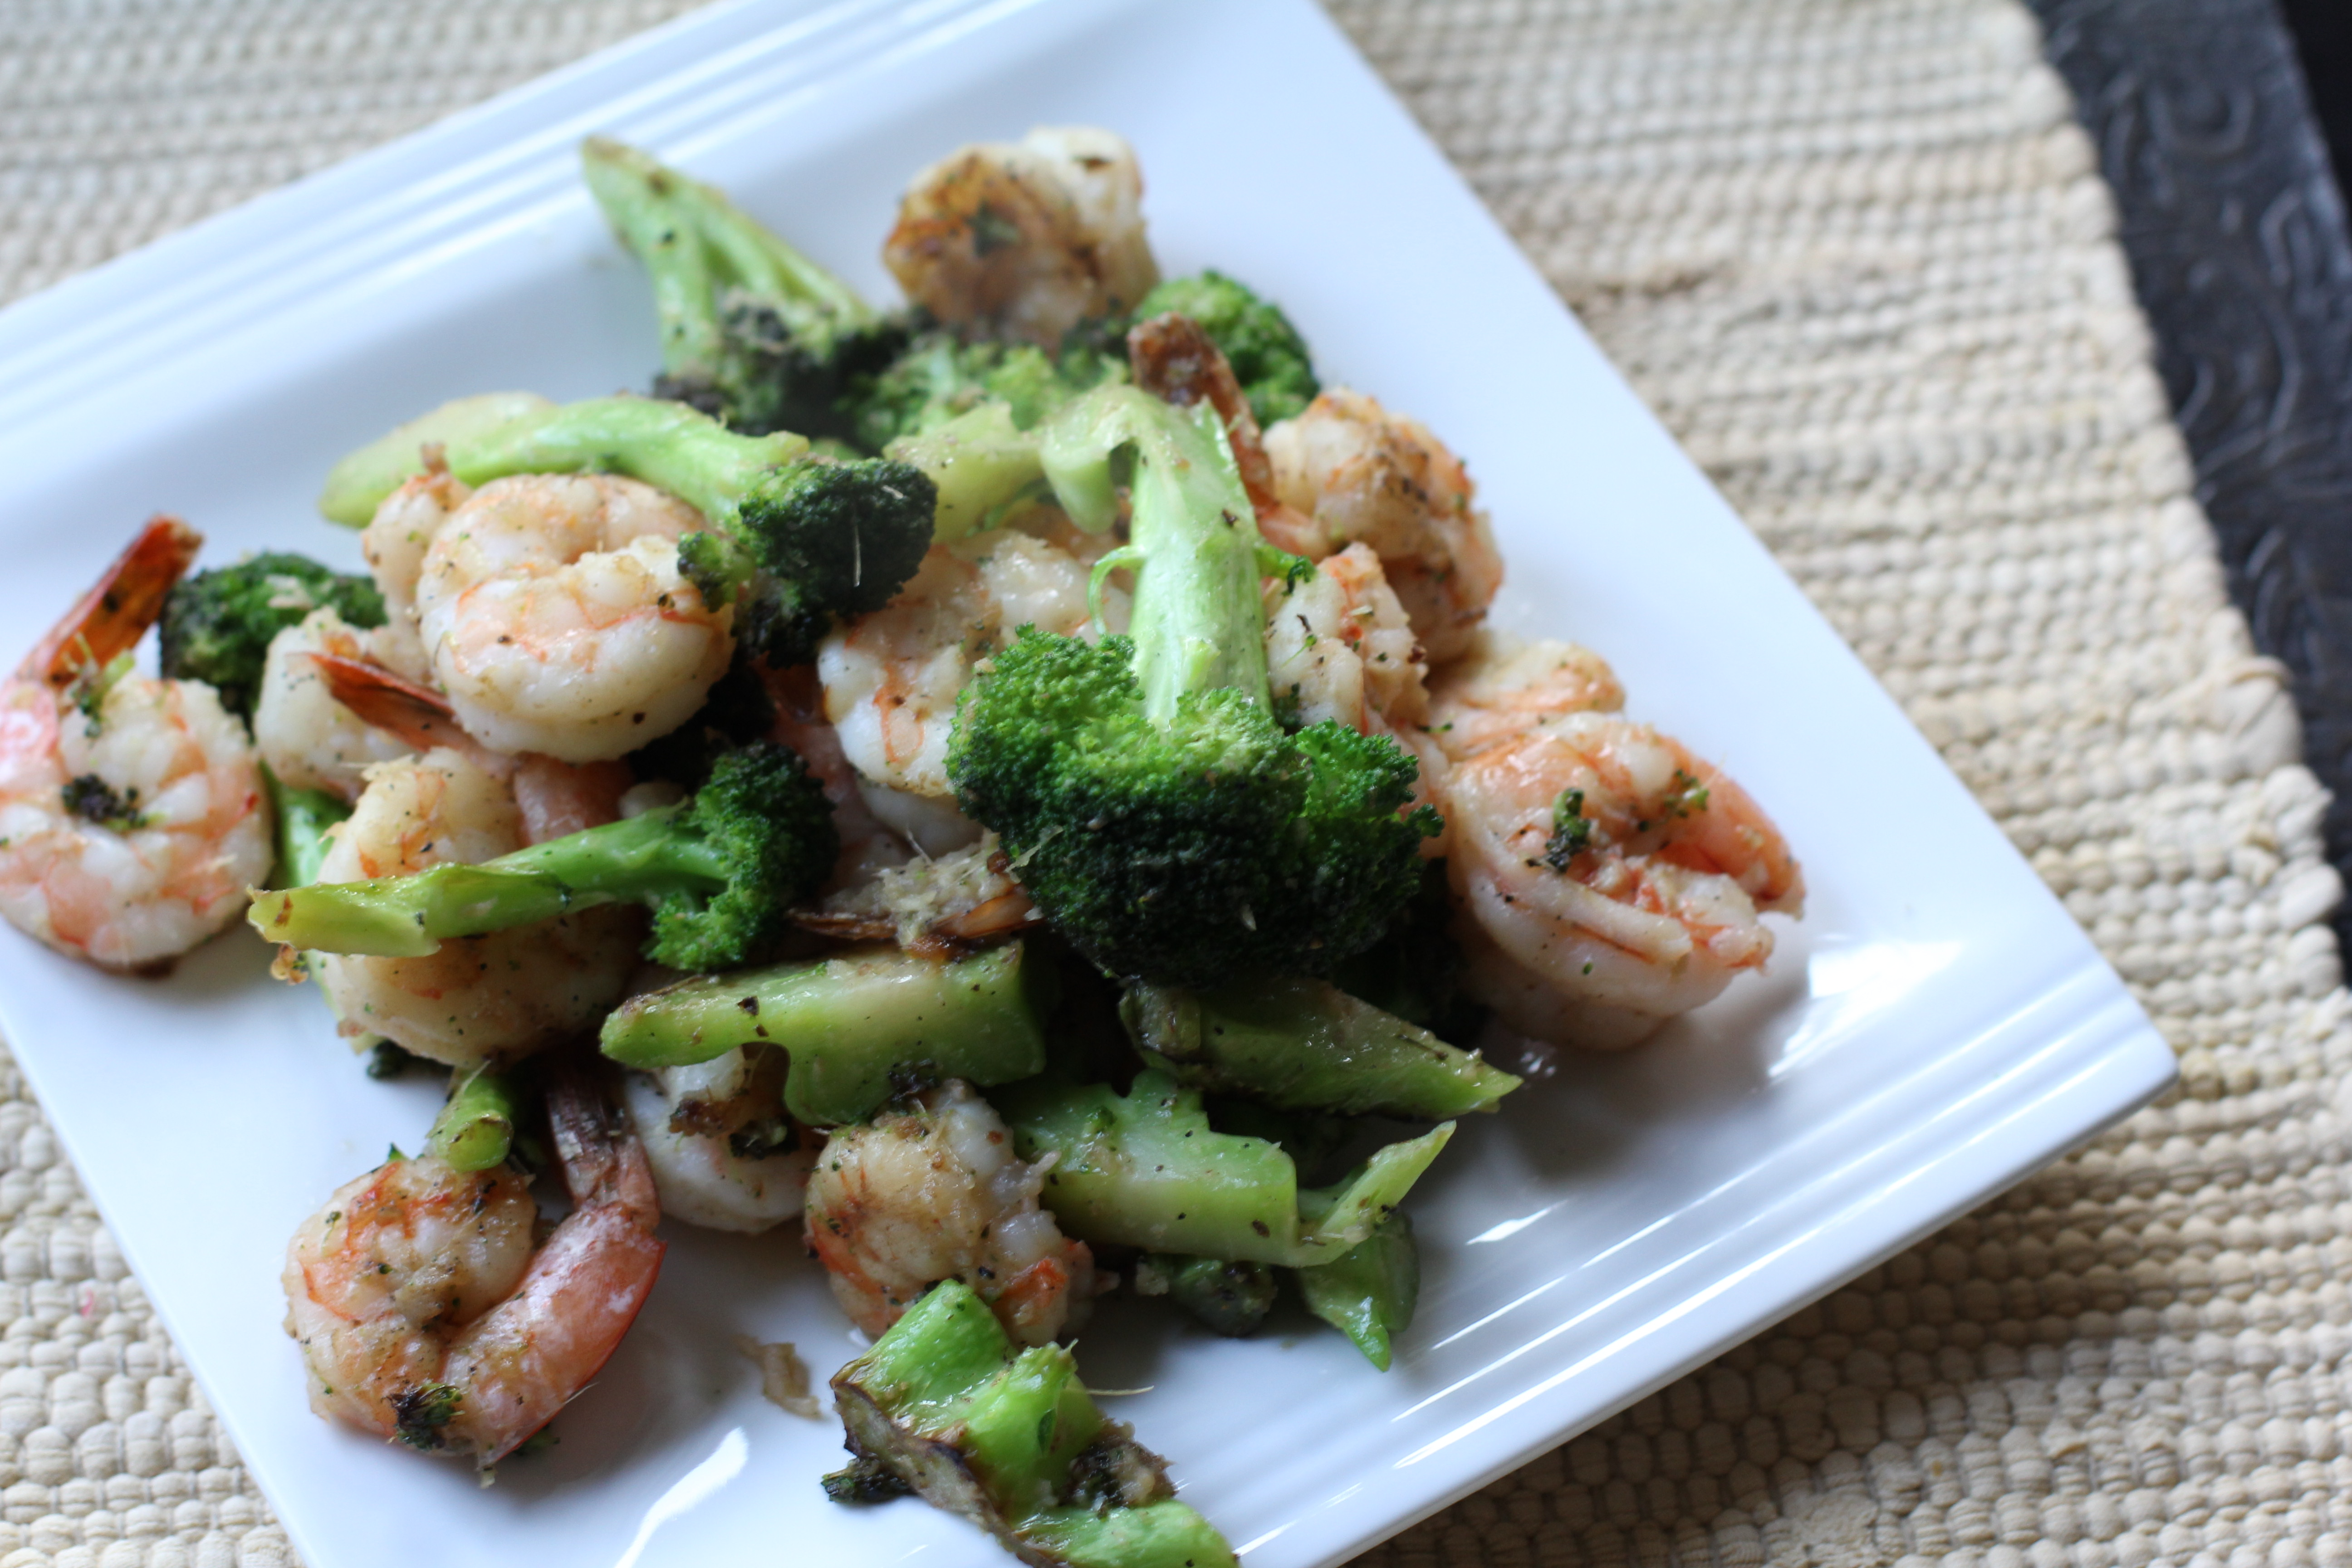 Shrimp broccoli recipes easy